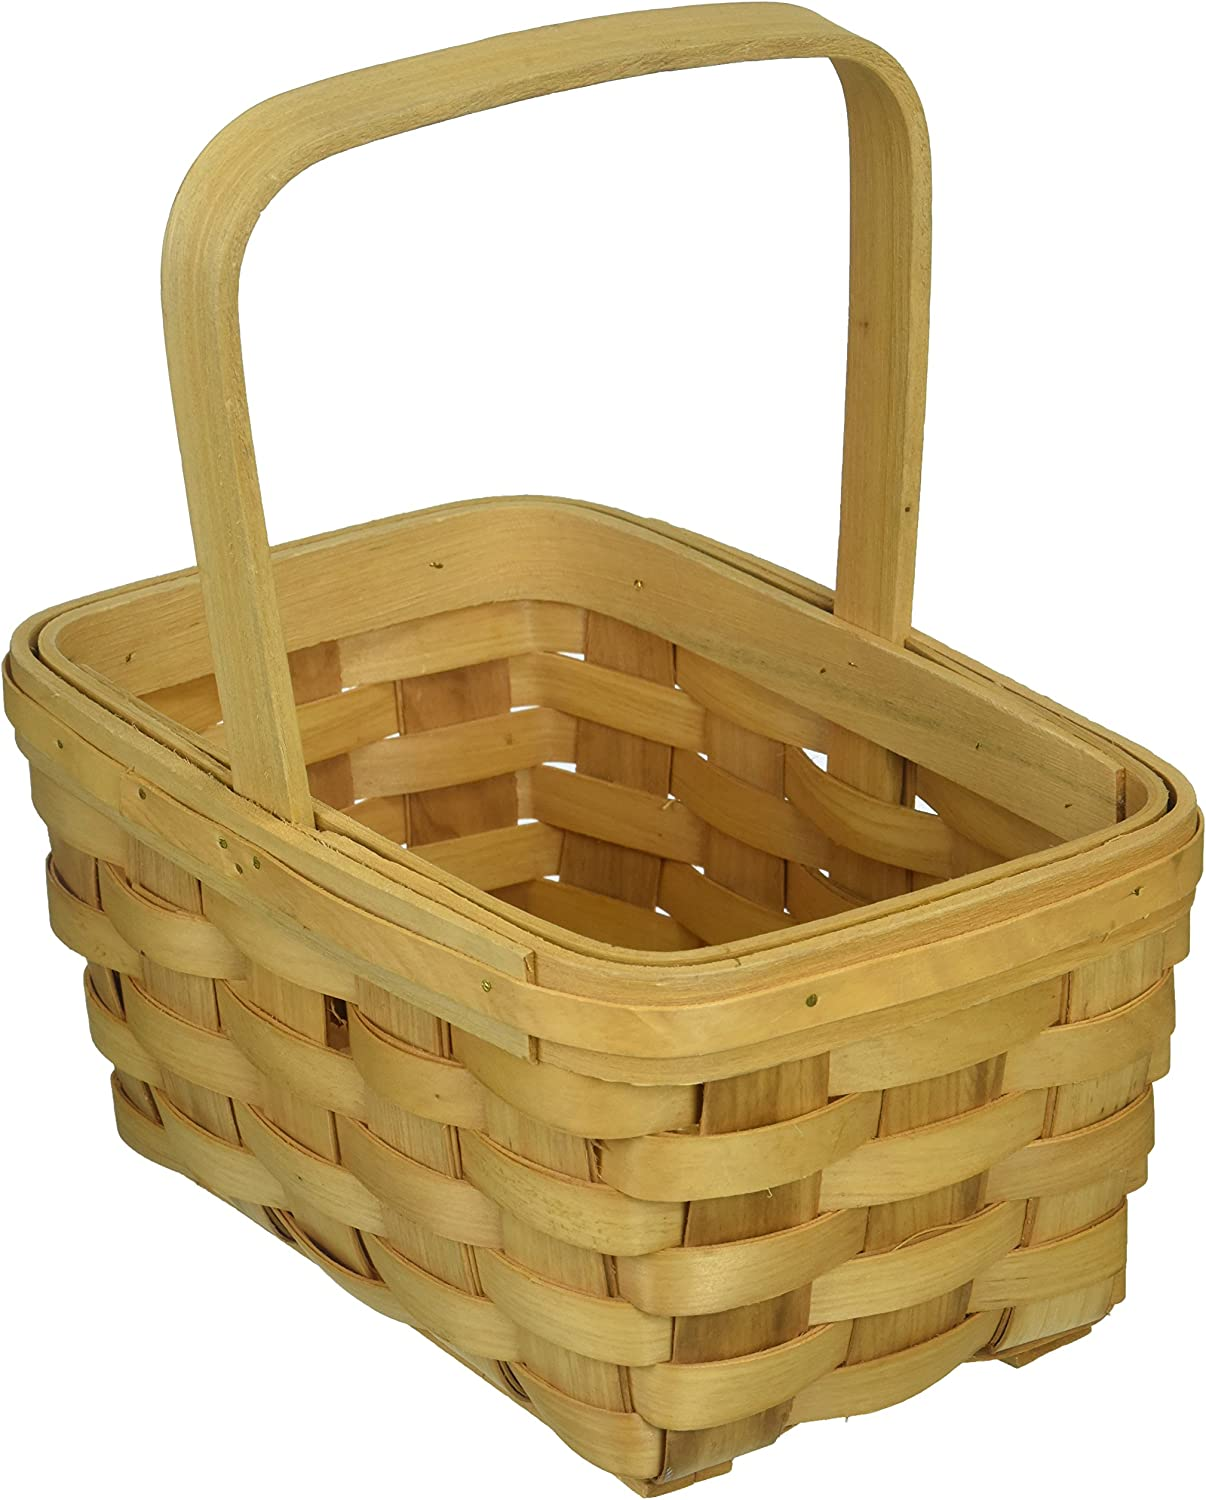 Darice, 8.5 inch, Wood Country Basket with Fixed Handle, Brown